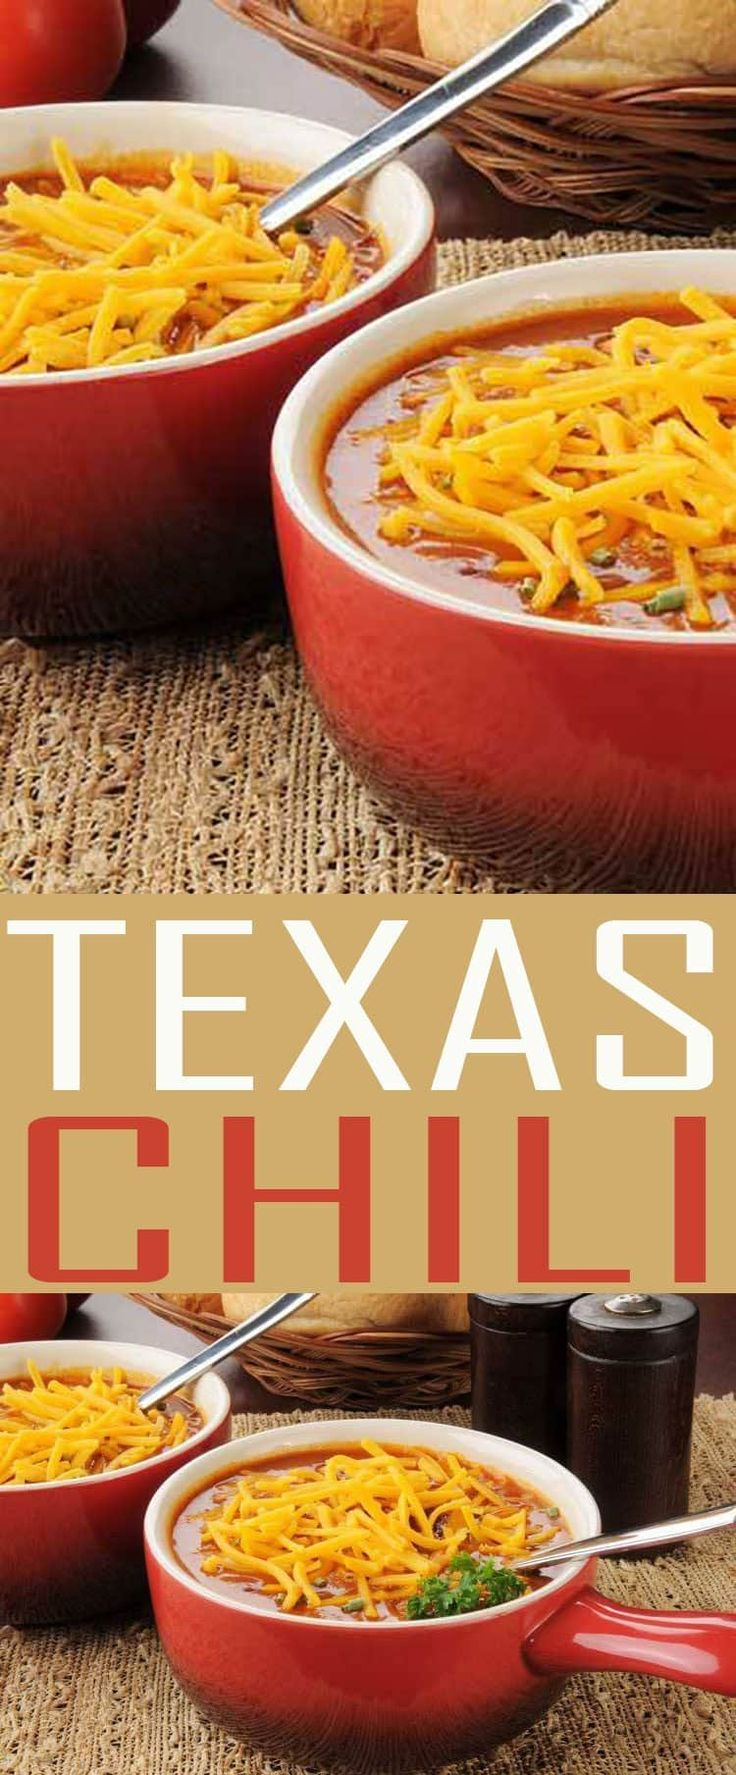 This Texas Chili recipe is out of the world delicious. This Chili Recipe is a classic cold weather food. Best chili recipe.